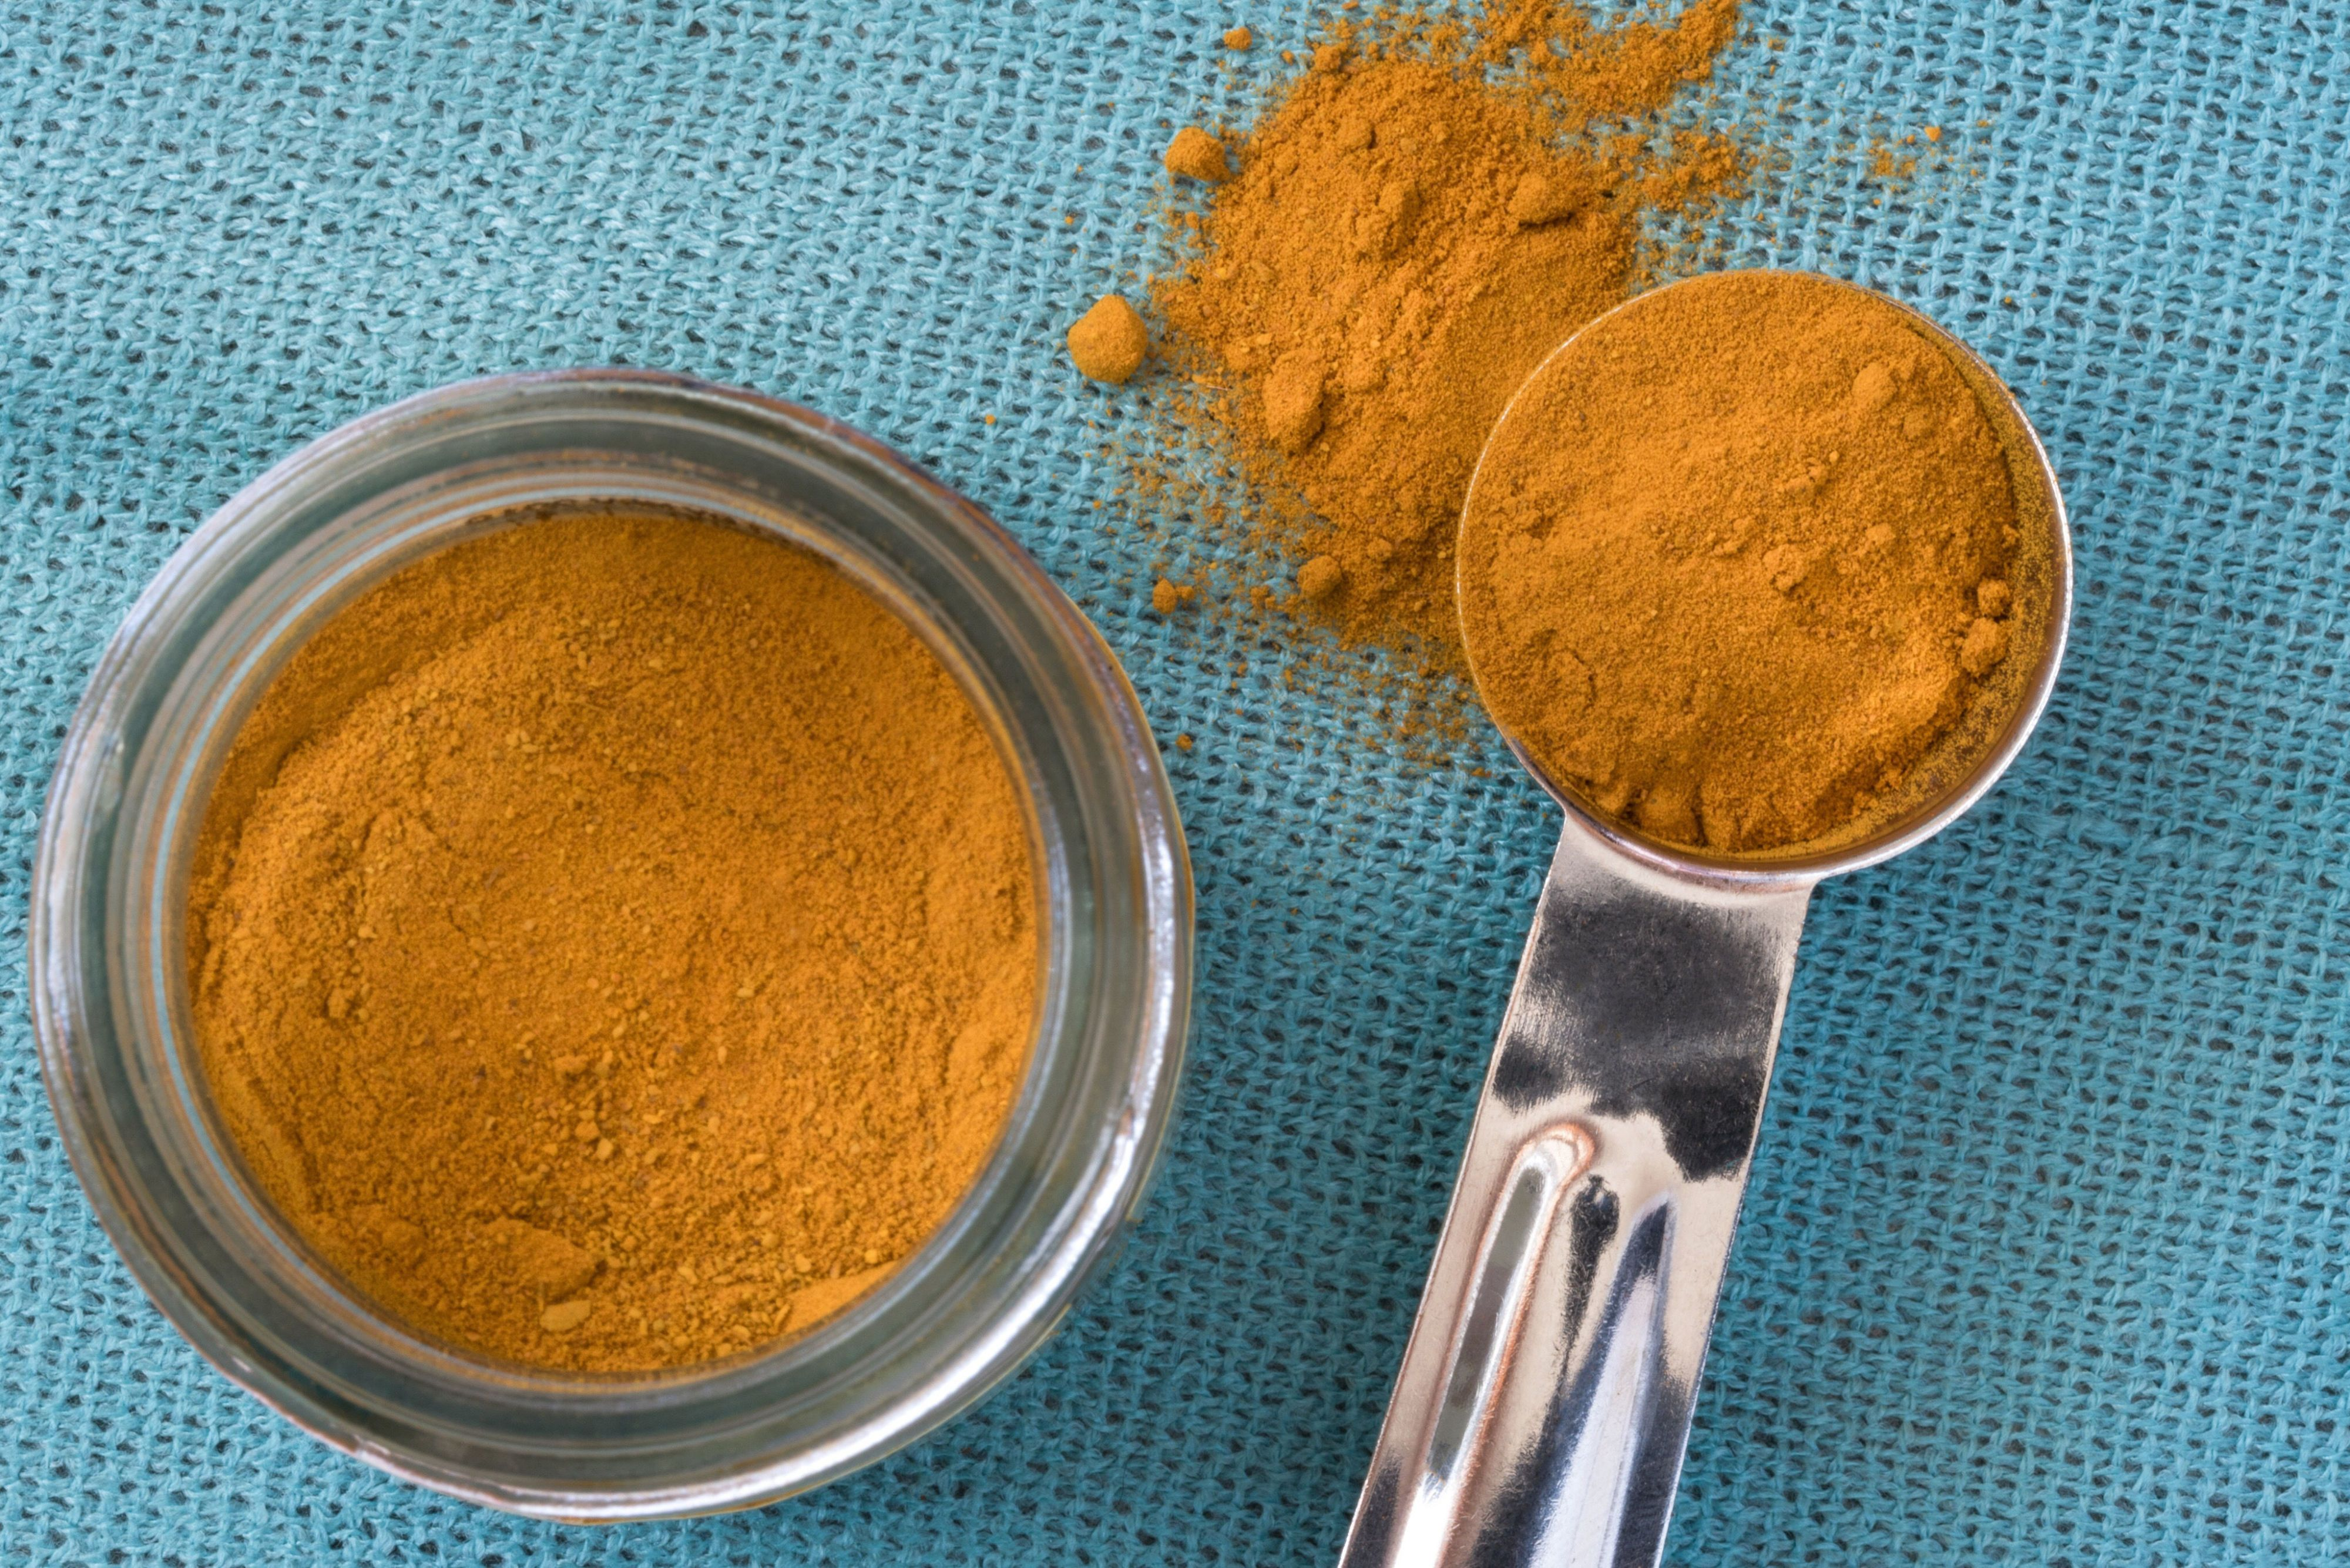 Dating an older man benefits of turmeric